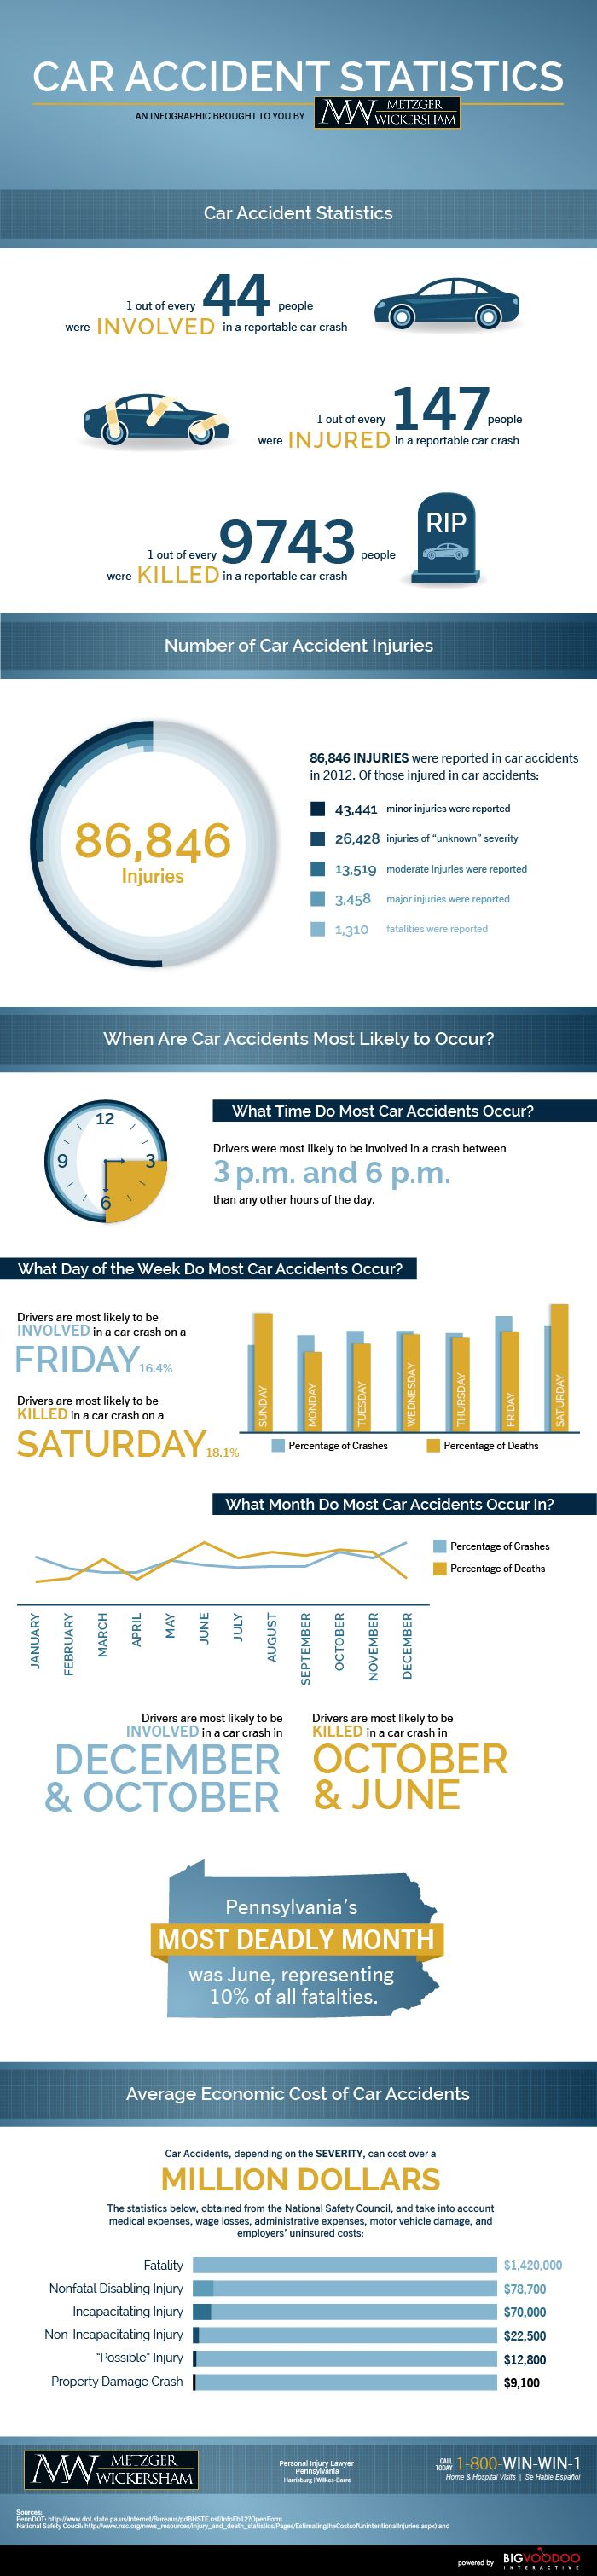 Car accidents statistics in Pennsylvania - infographic